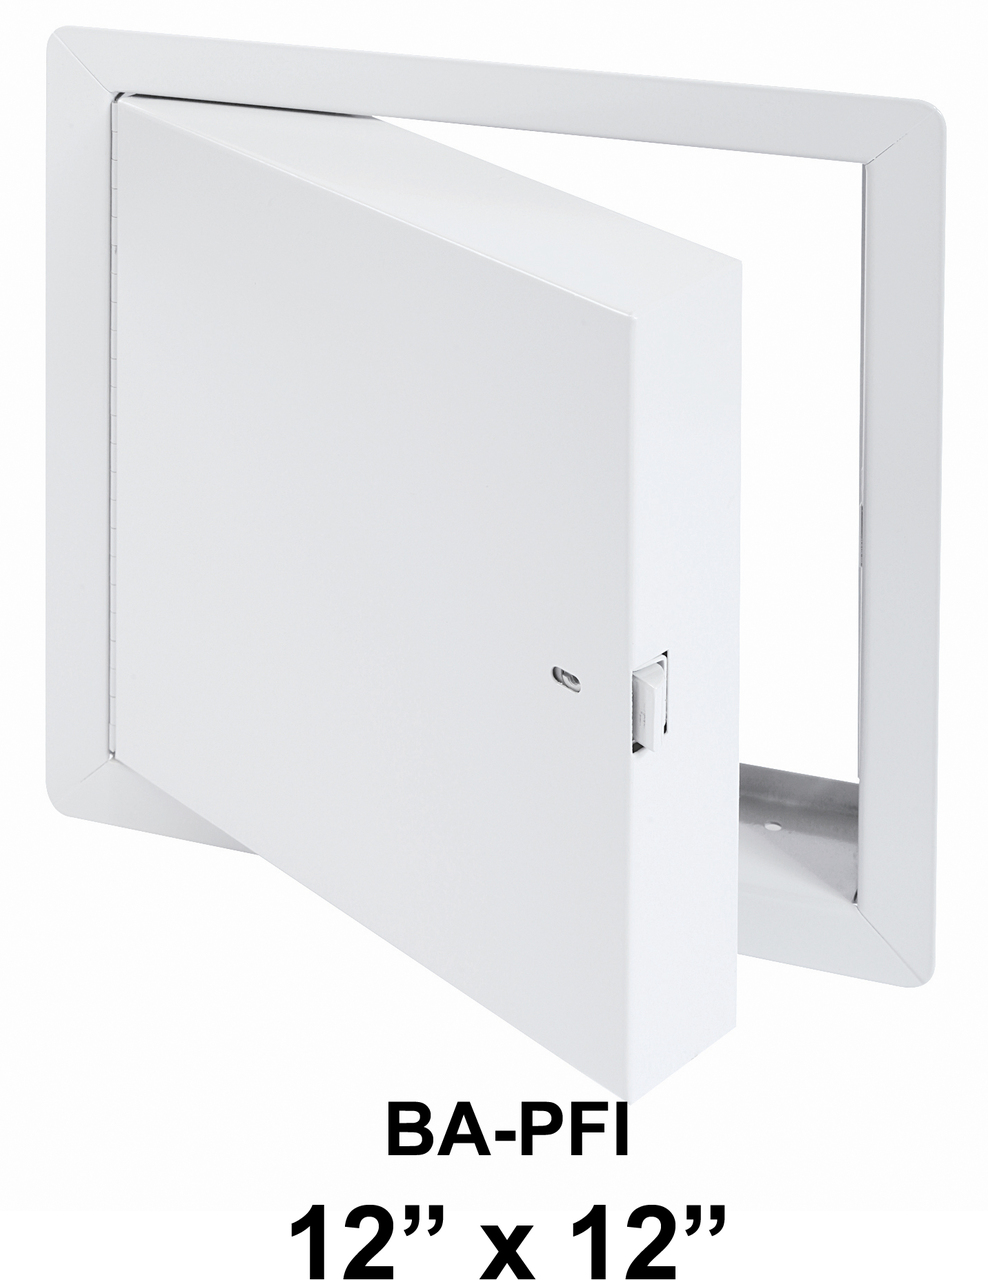 Fire Access Doors BA-PFI 12 x 22 Insulated with Flange - BEST